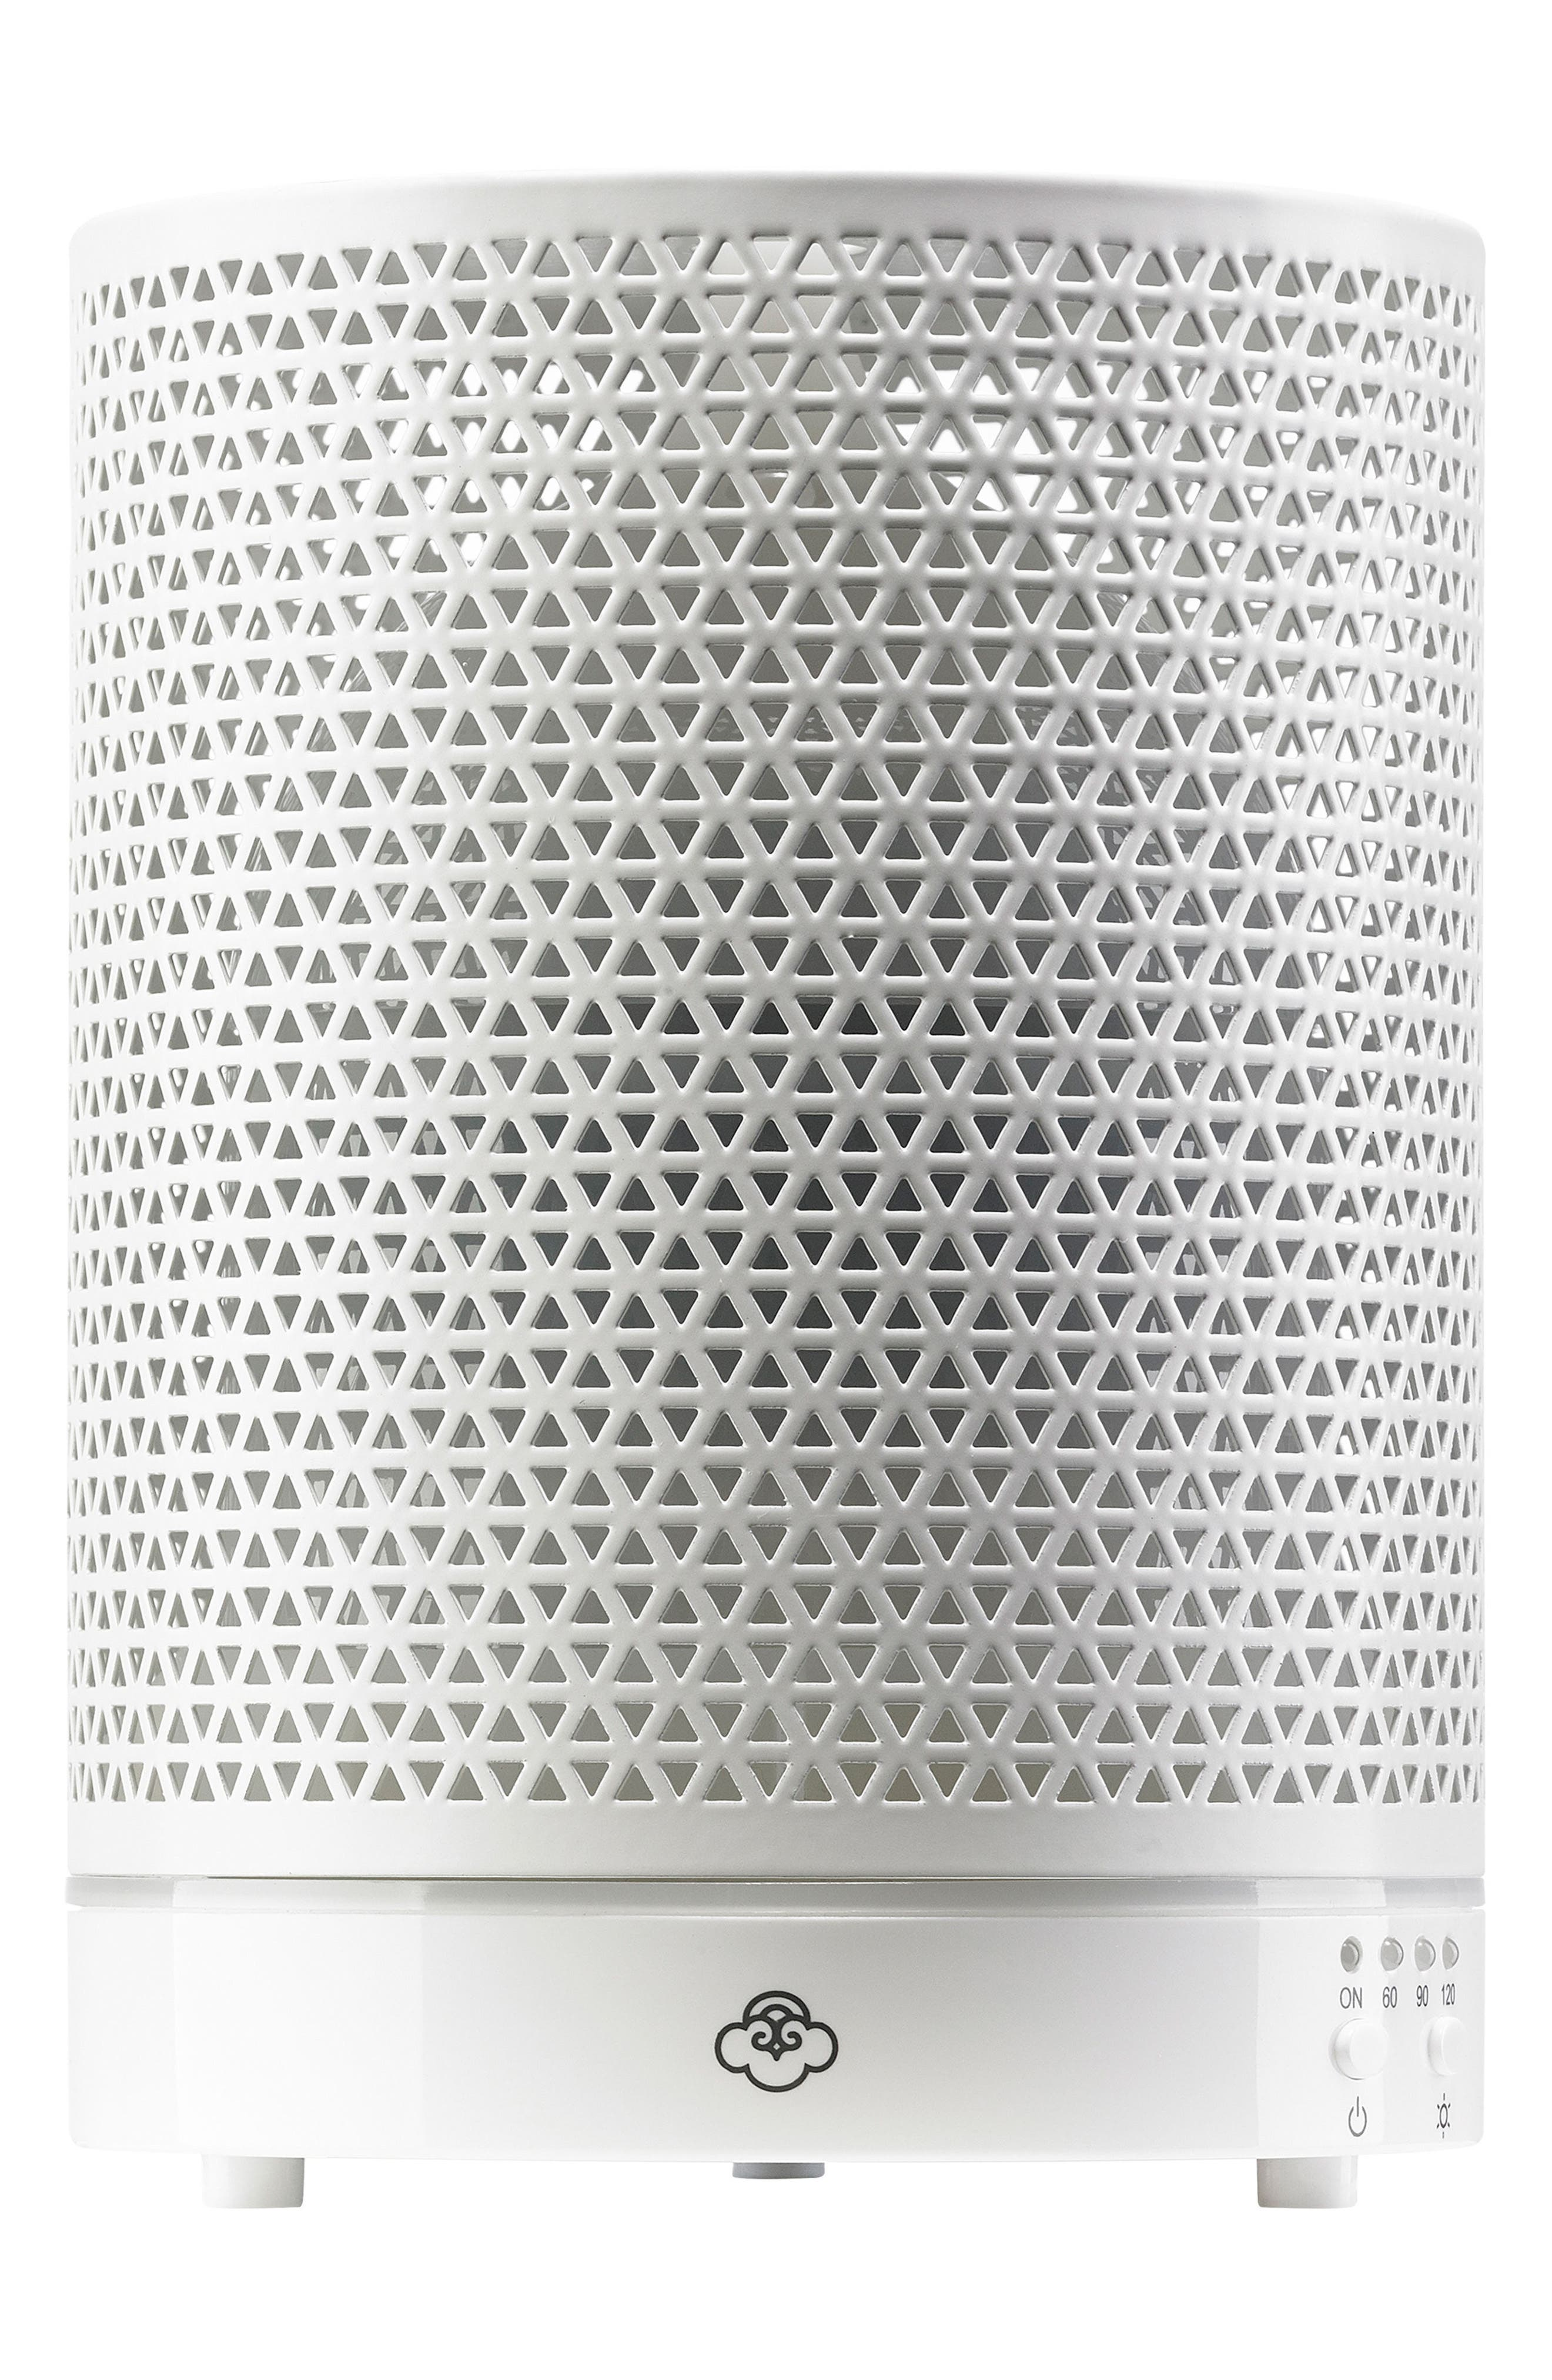 Alternate Image 1 Selected - SERENE HOUSE Asterism Electric Aromatherapy Diffuser